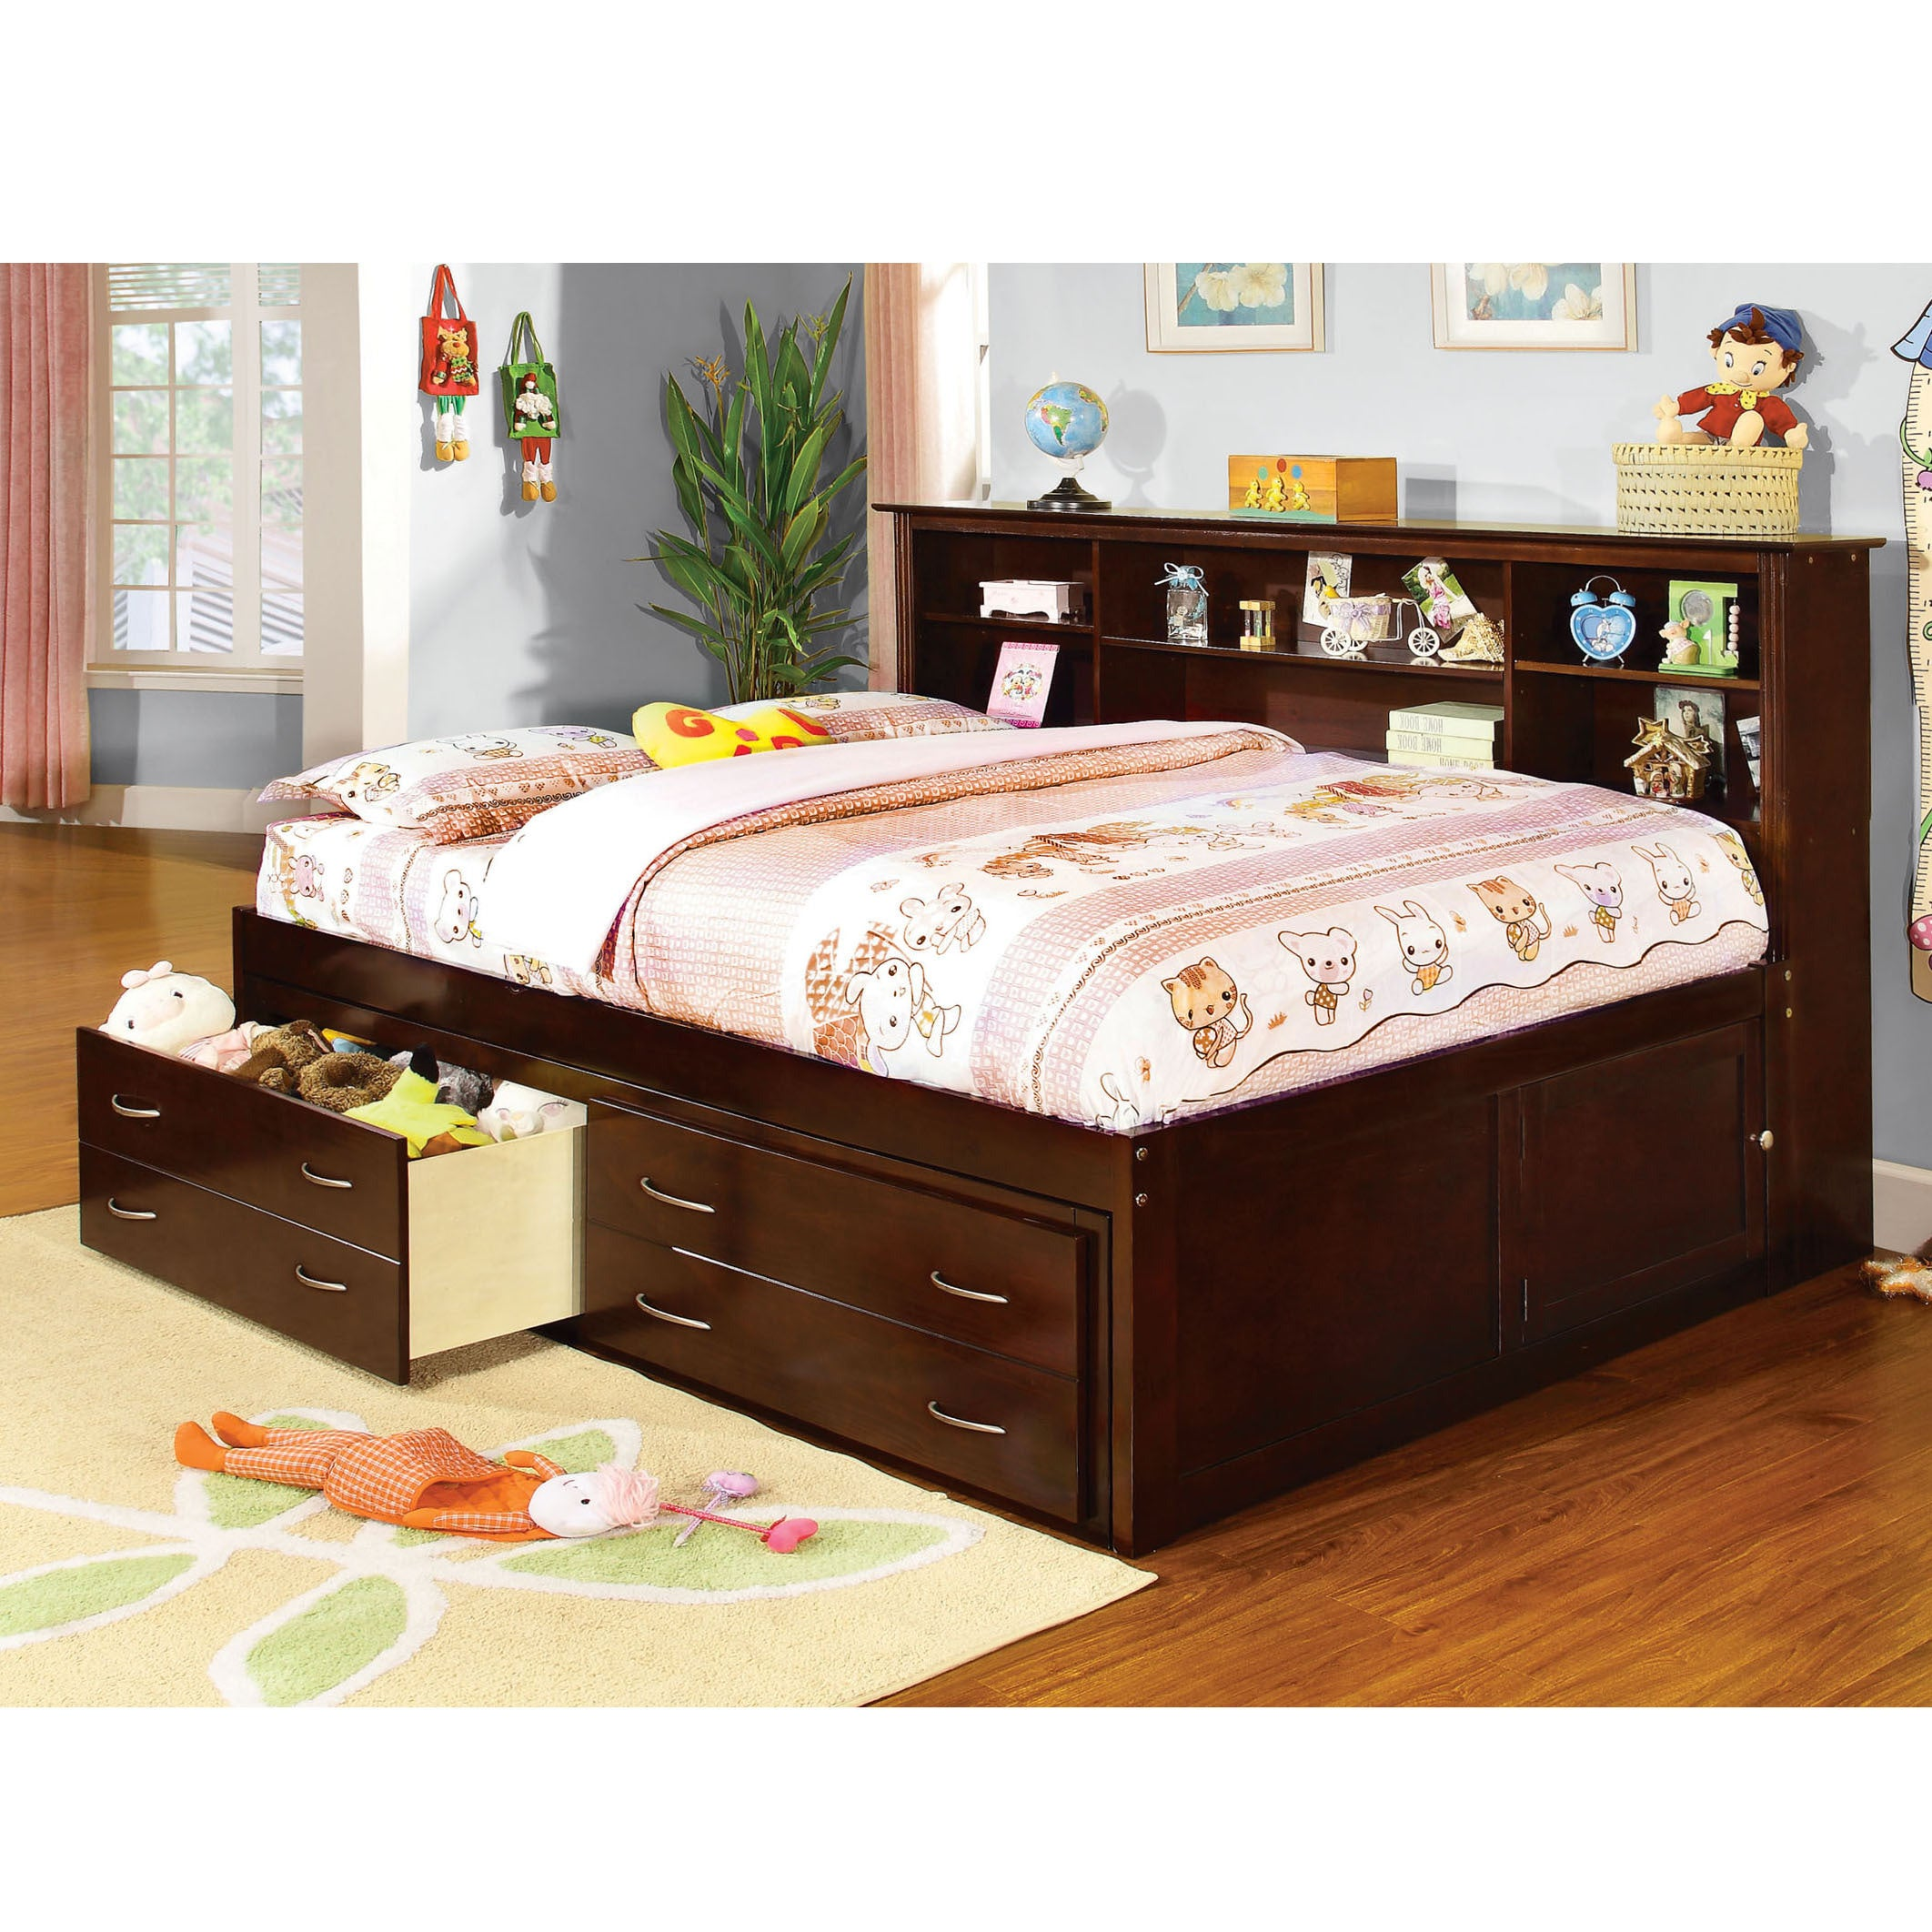 Furniture Of America Revesia Captain Bed With Storage Drawer And Bookcase Headboard